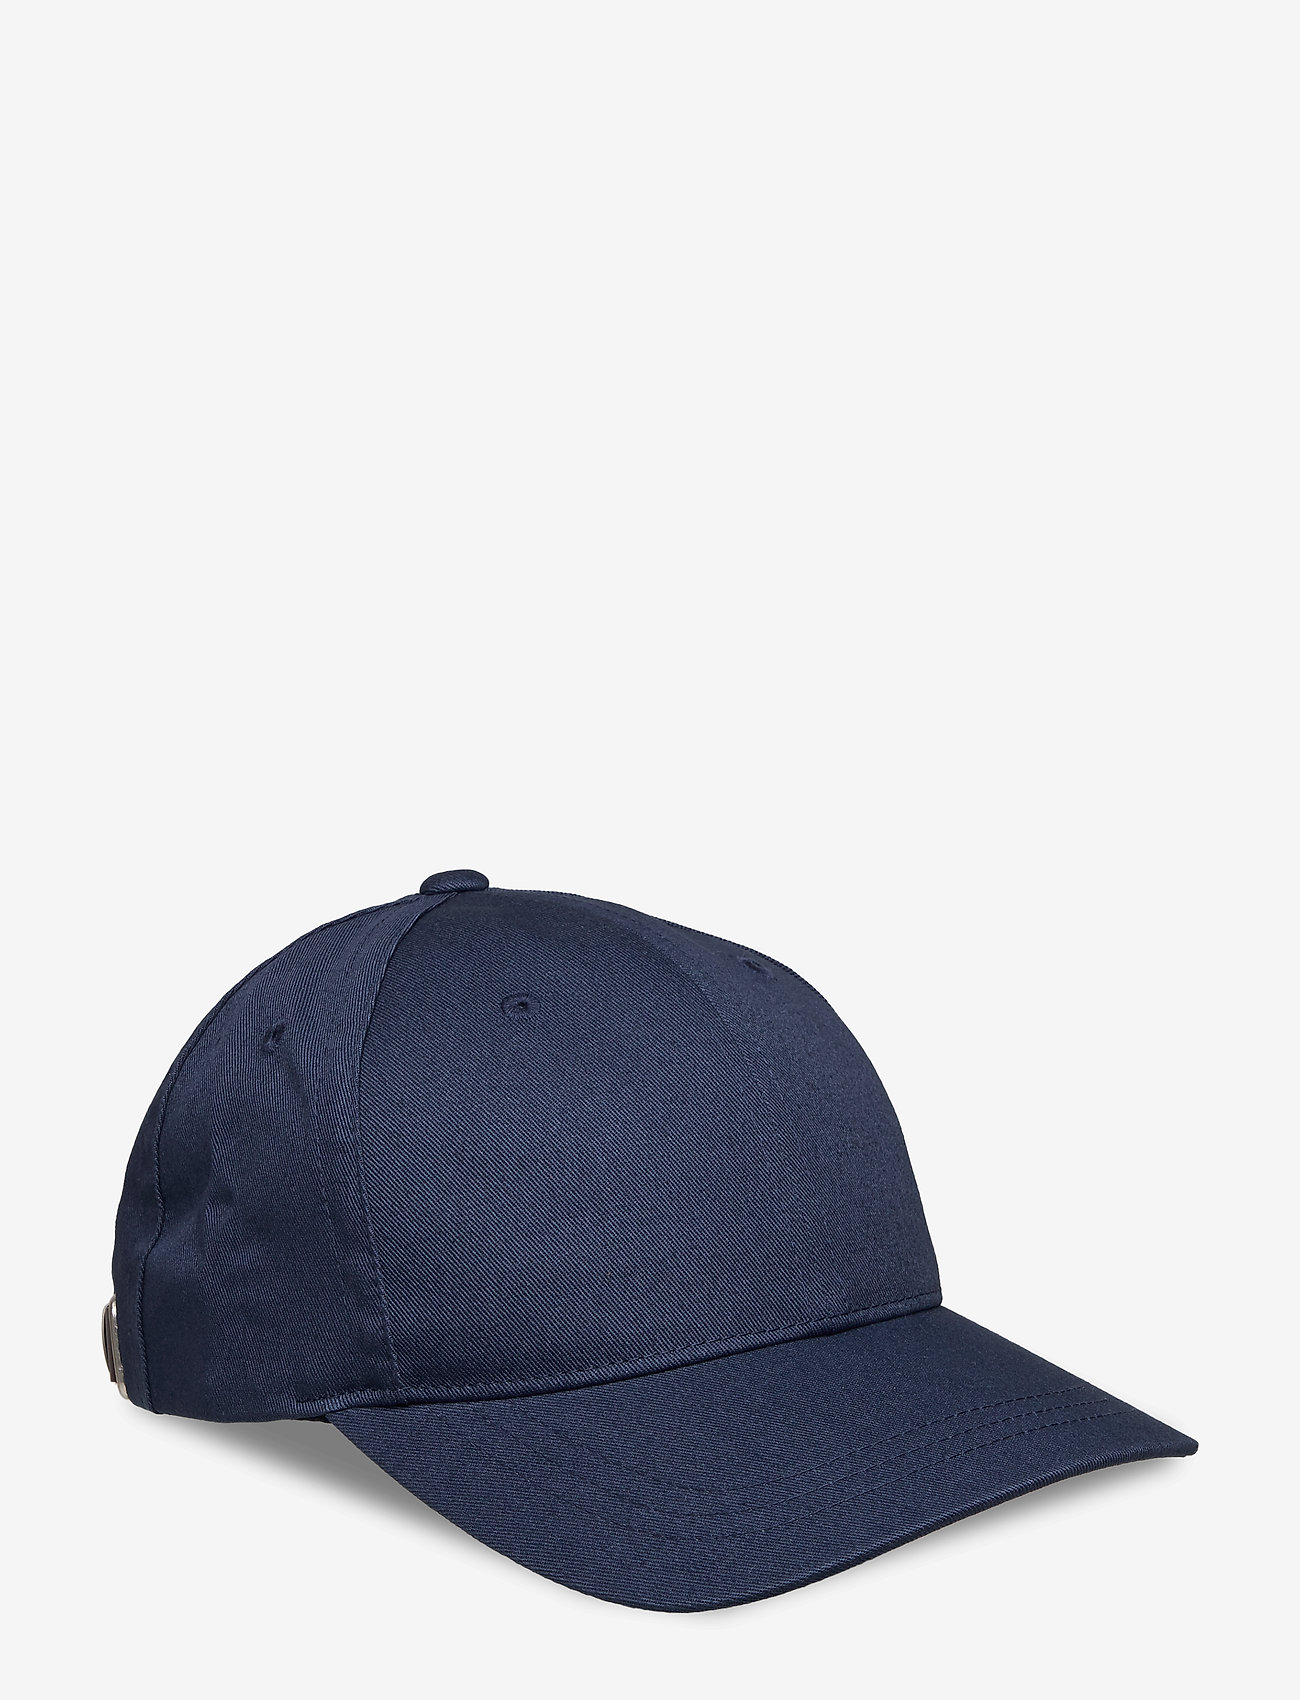 Levi's Footwear & Acc - CLASSIC TWILL RED TAB BASEBALL CAP - casquettes - navy blue - 0